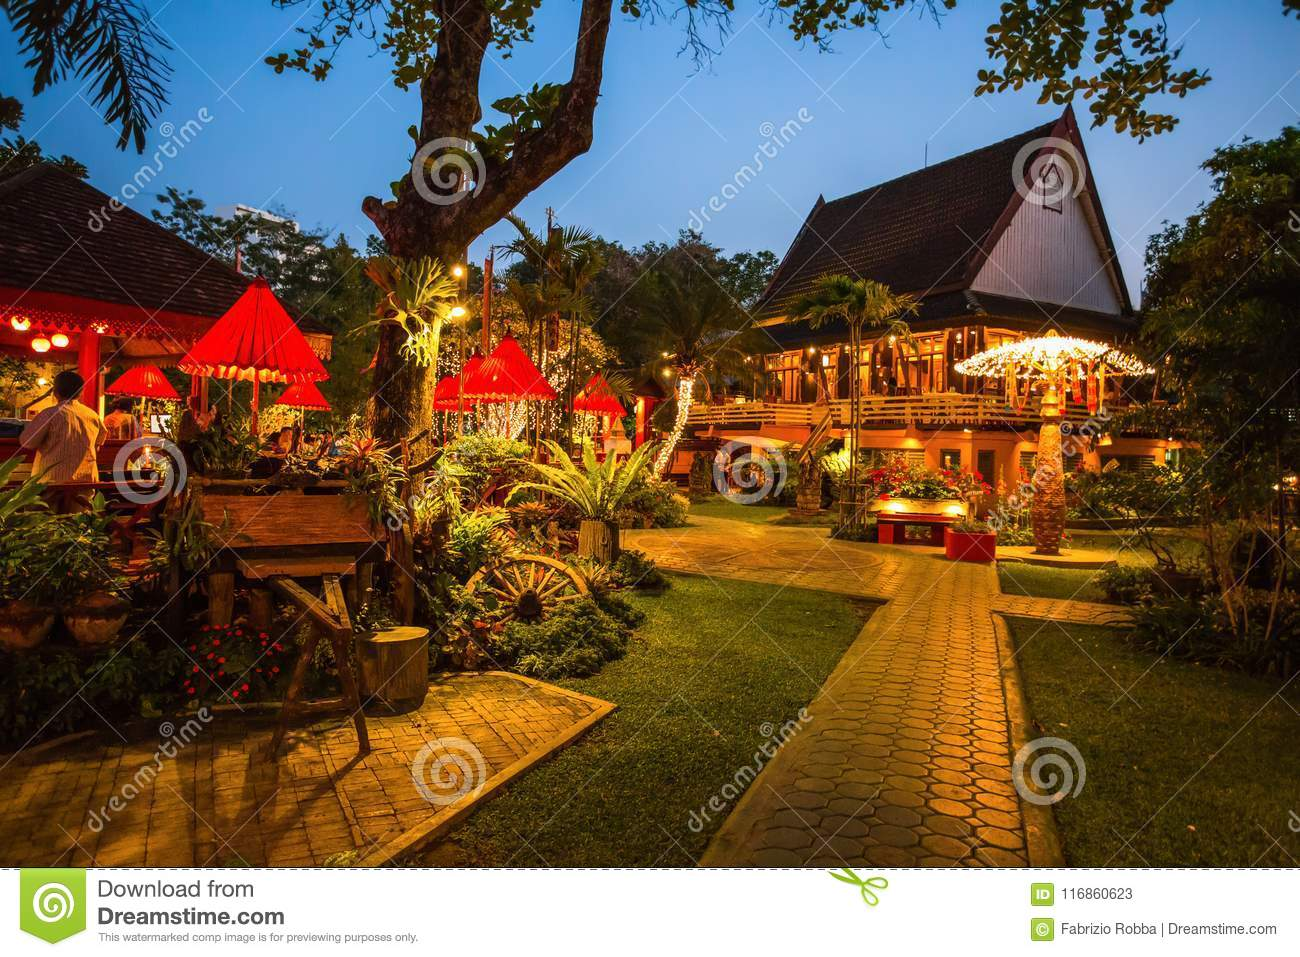 An elegant and typical thai restaurant in Chiang Mai by night, Thailand.